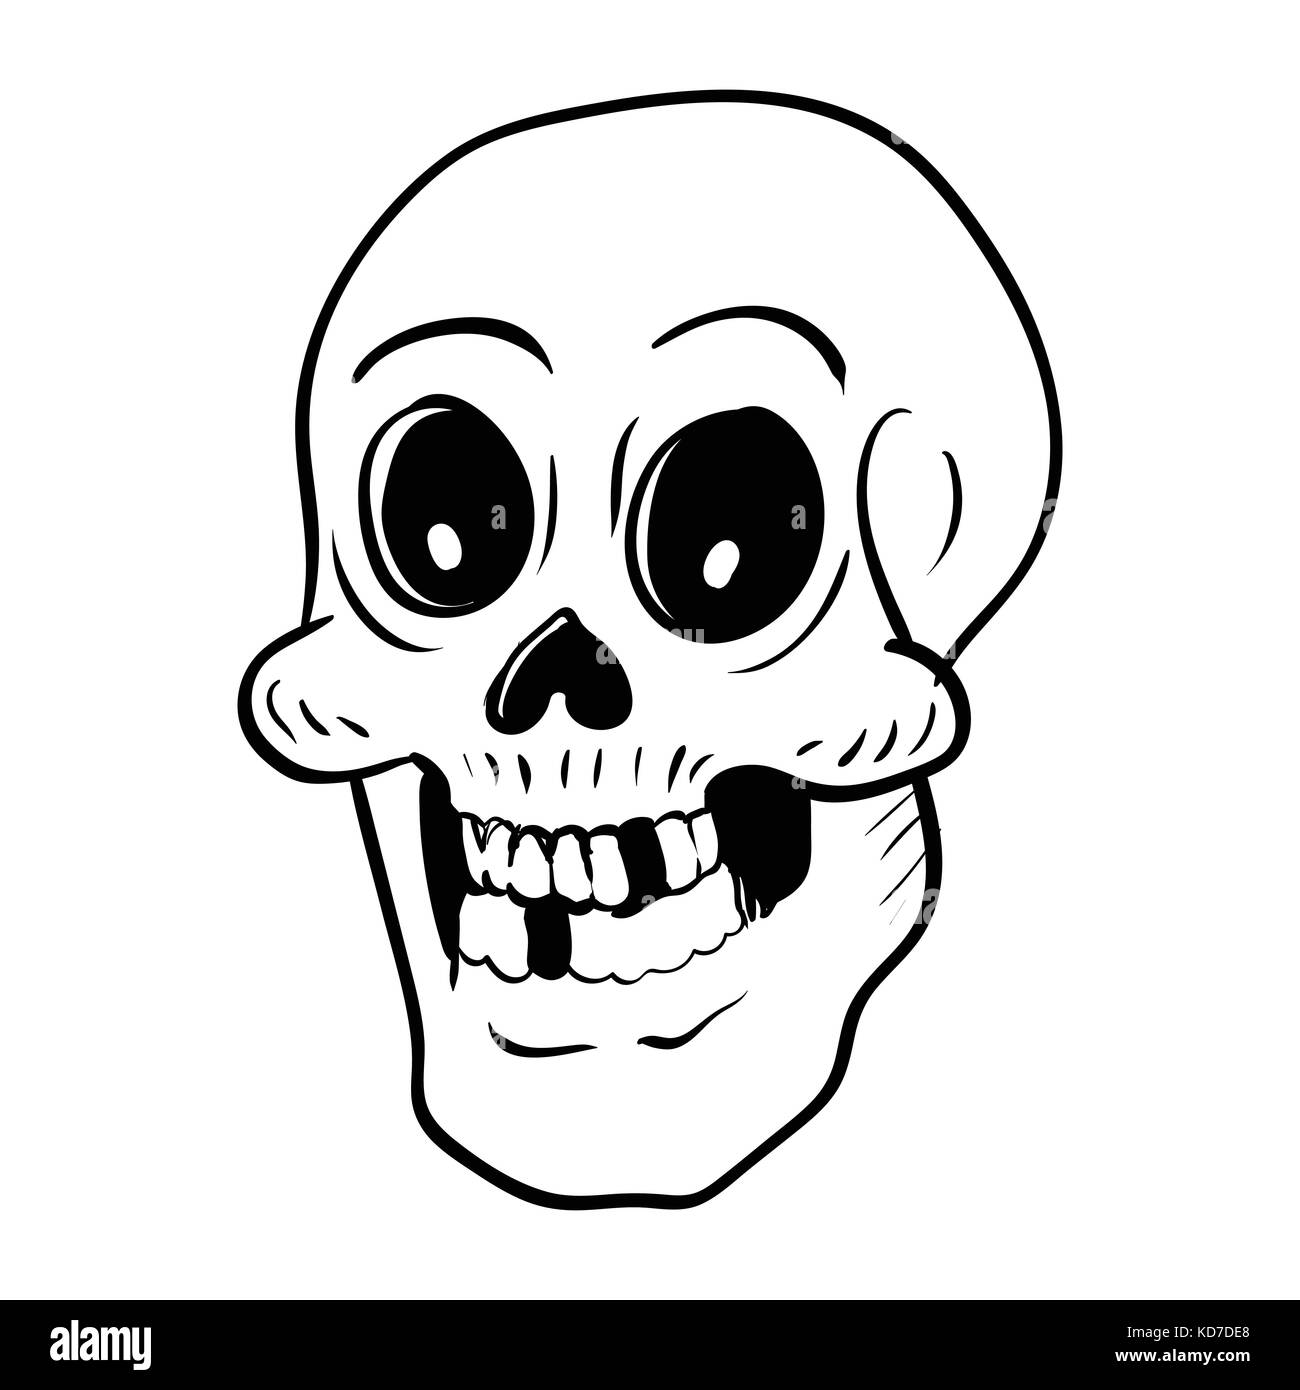 Illustration Scary Skeleton Cartoon Isolated Stock Photos ...